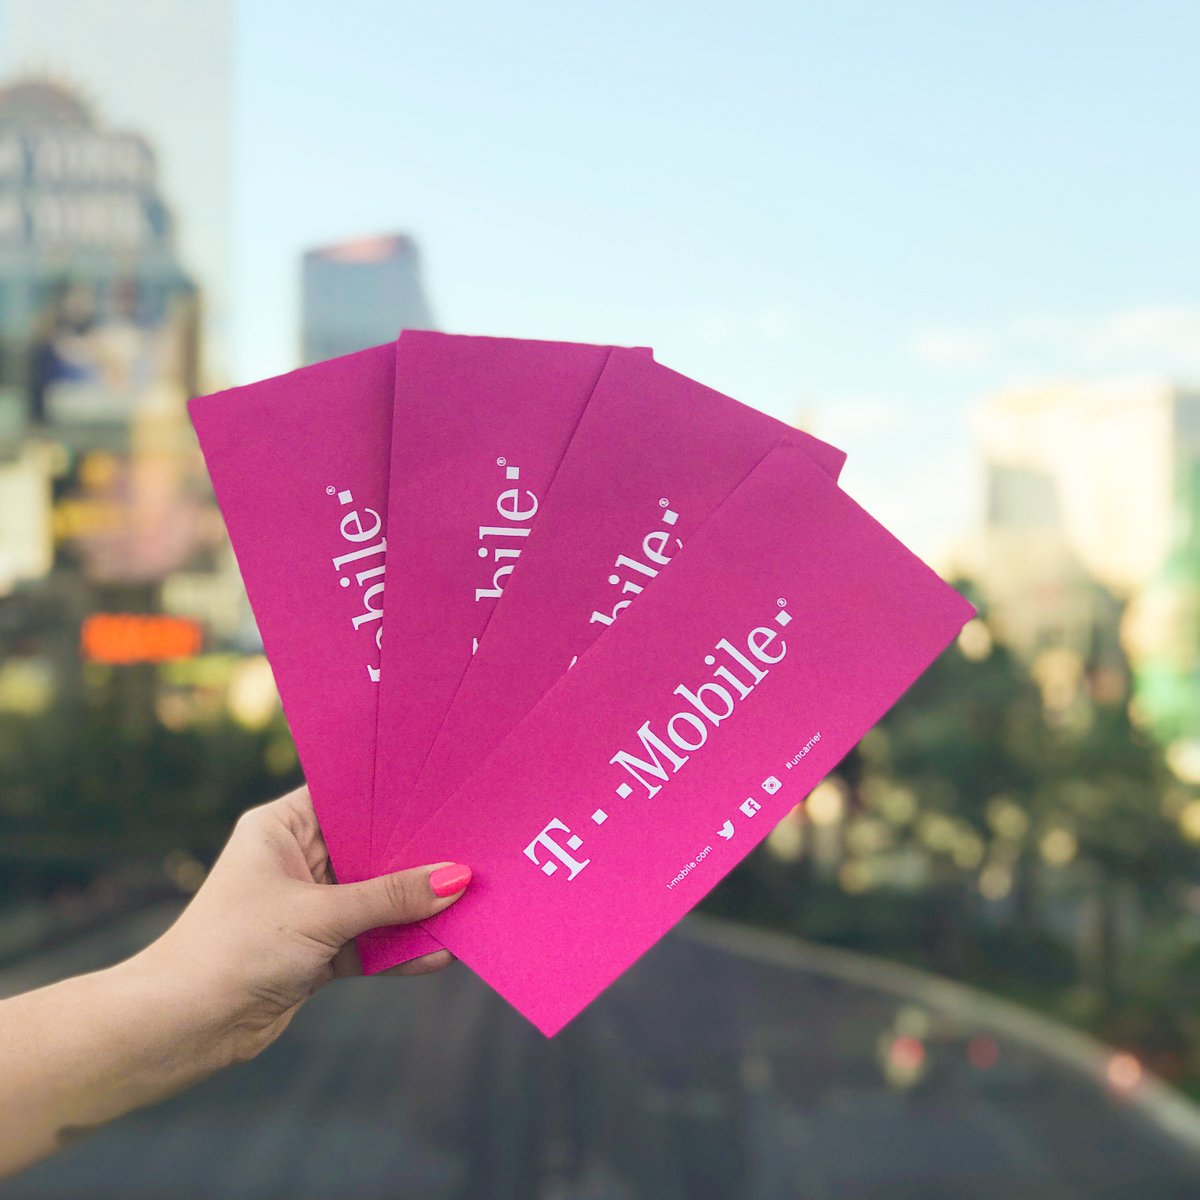 T Mobile On Twitter What Happens In Las Vegas Could Be You At